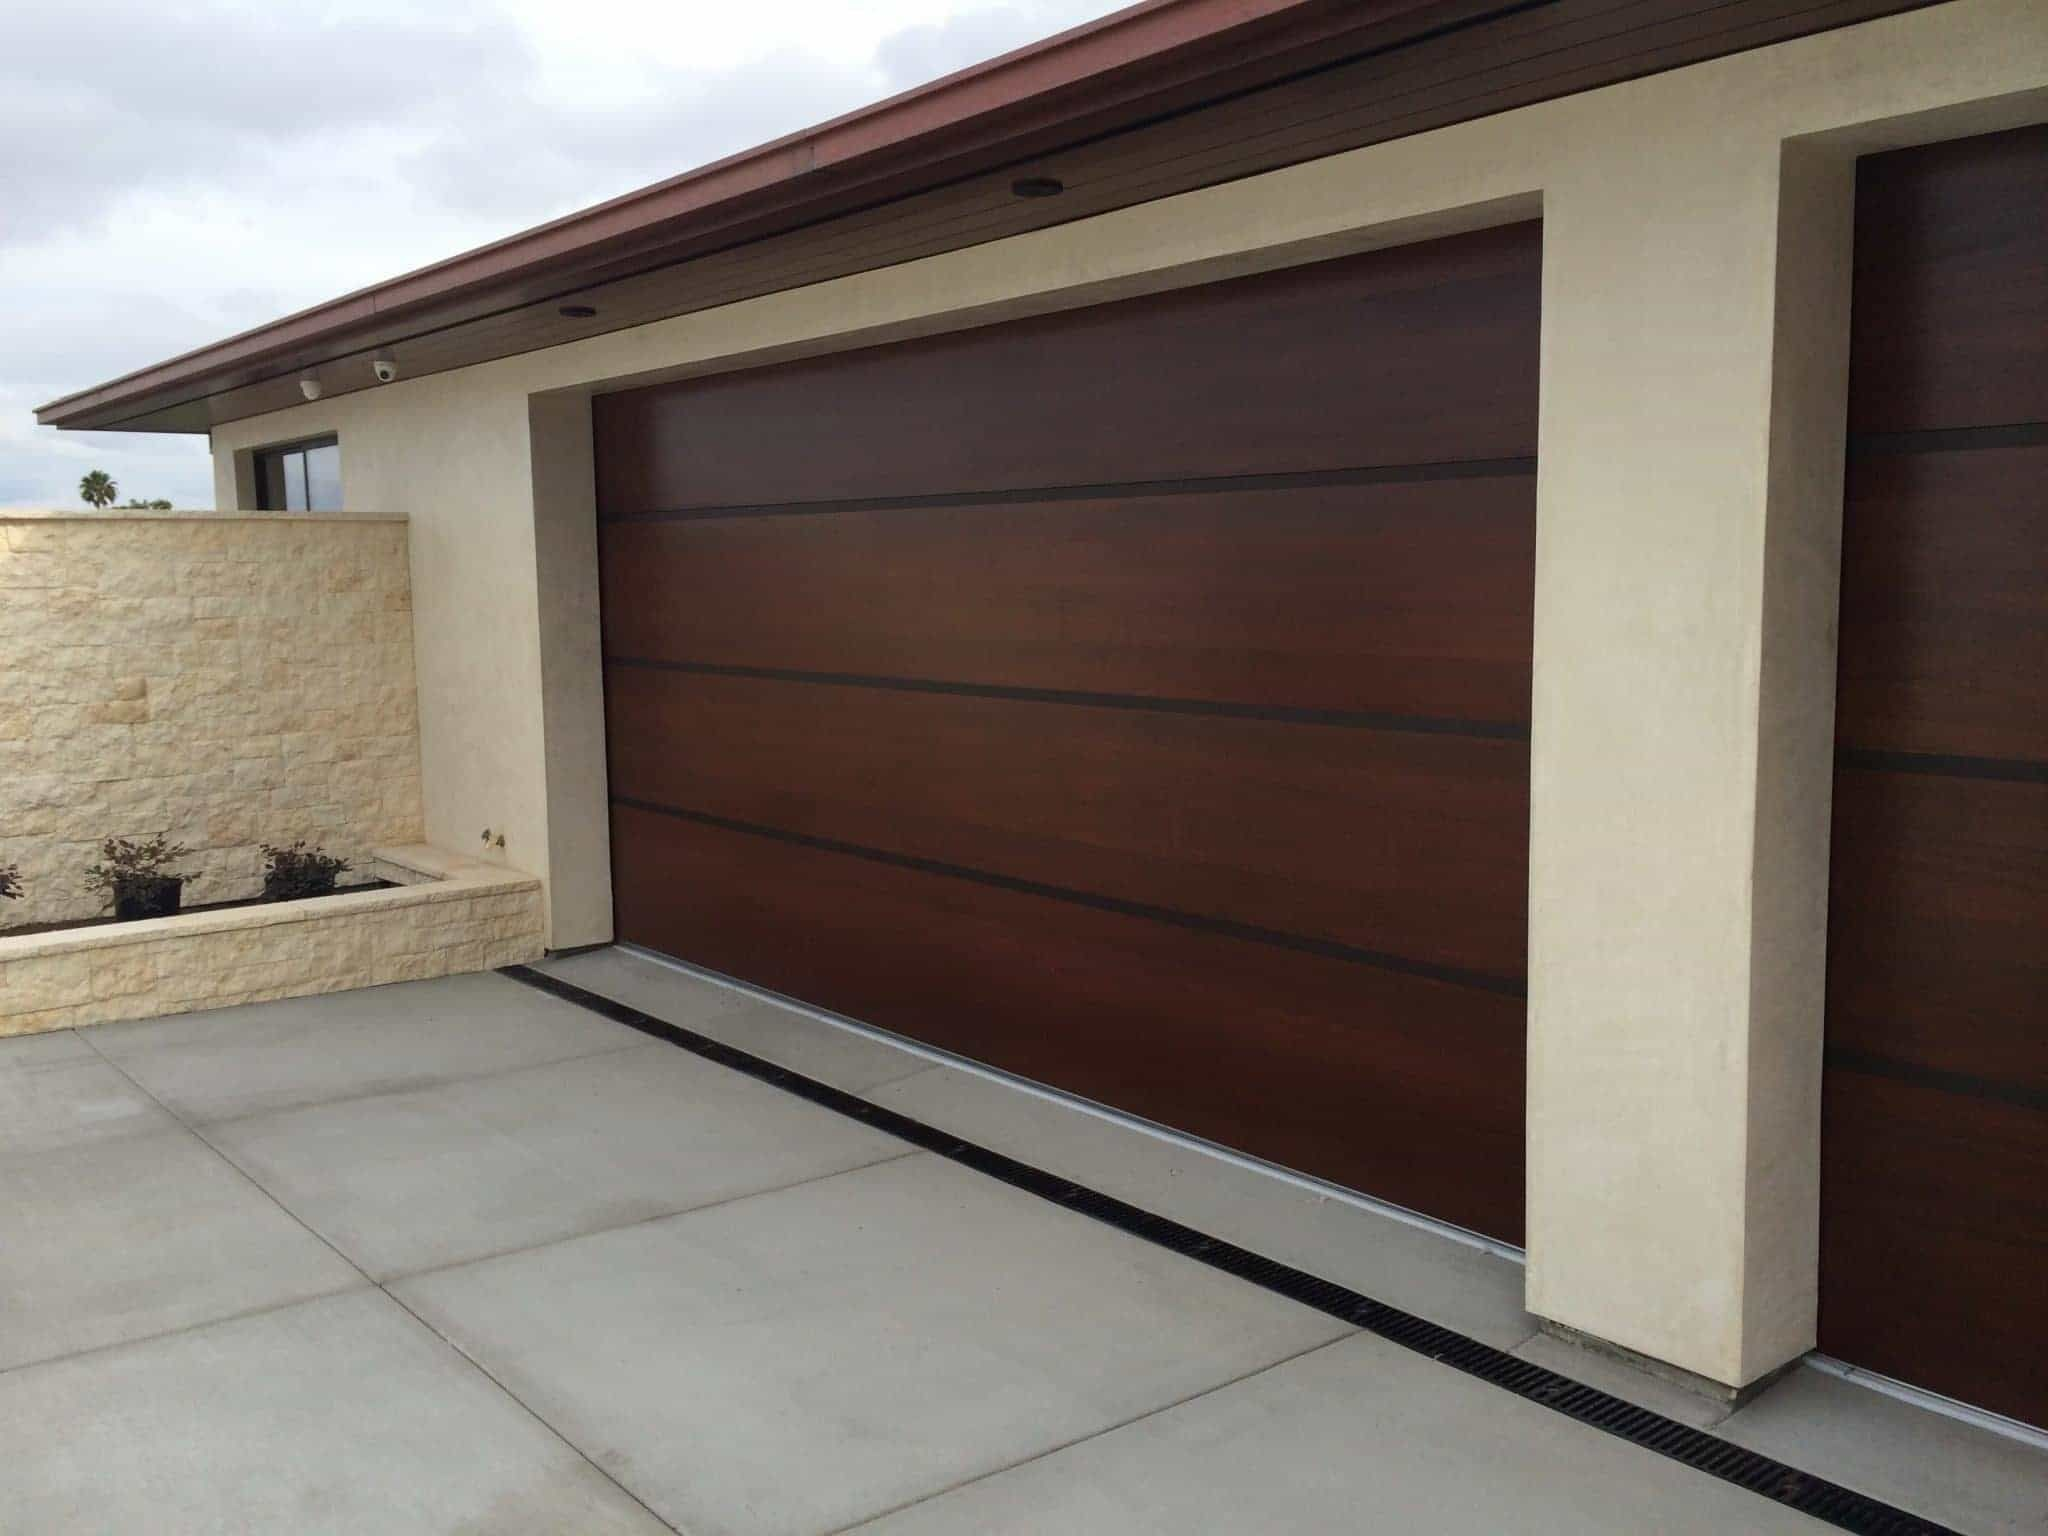 Garage Door Services In California Tungsten Royce Garage Door Design Modern Garage Doors Contemporary Garage Doors